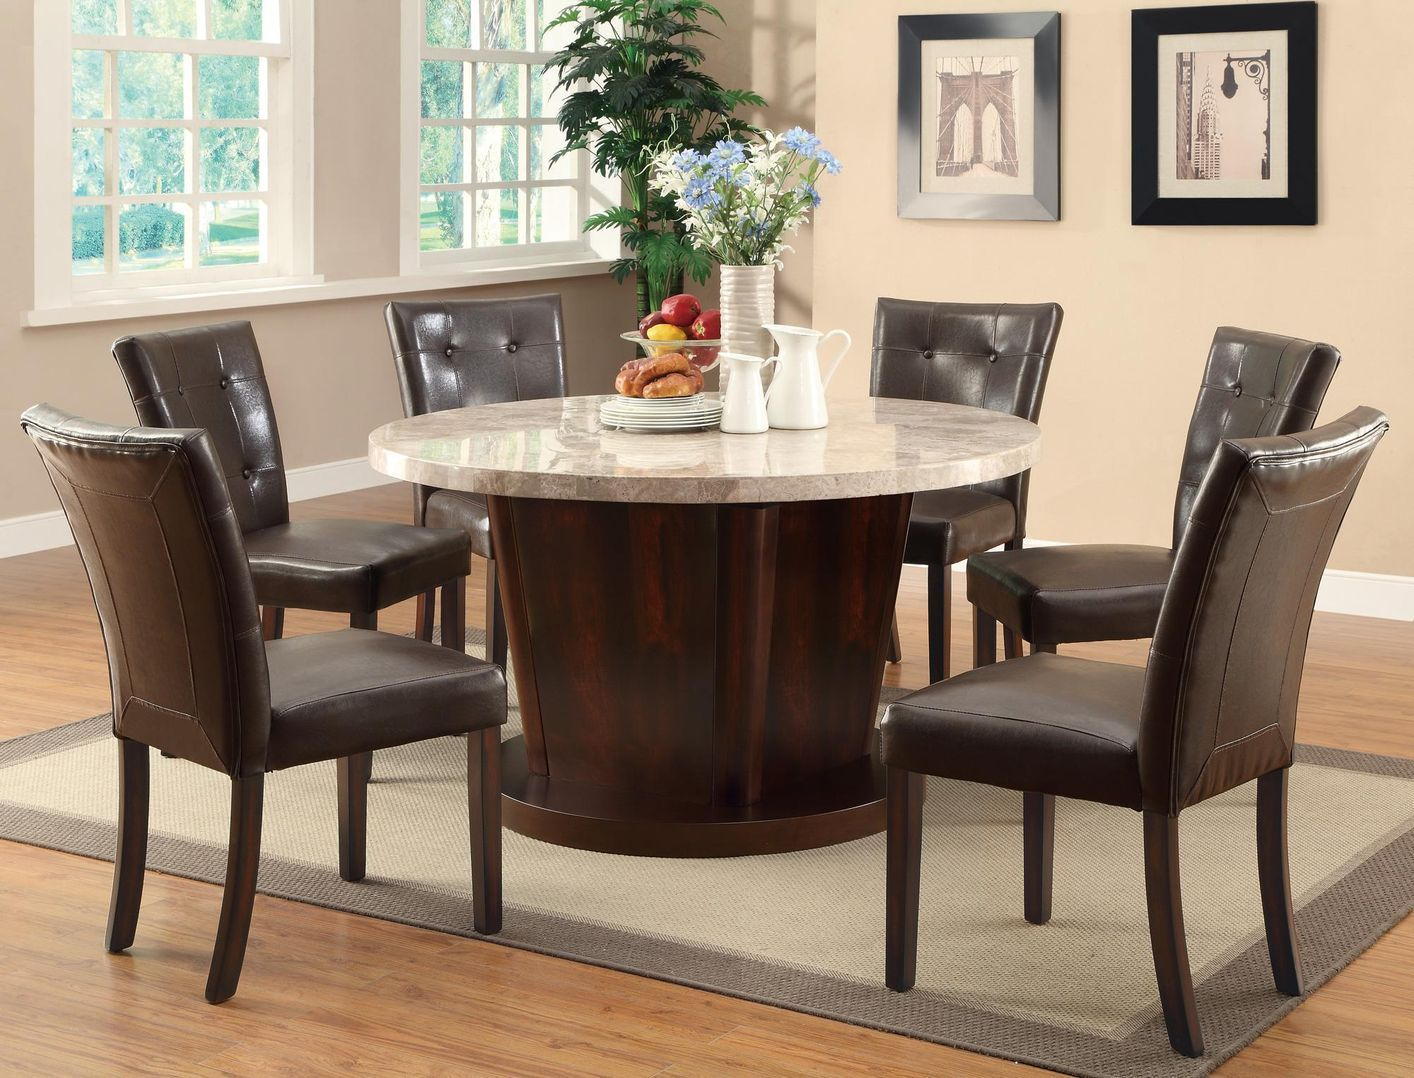 Round Kitchen Table Sets For 6 | House | Dining table chairs ...